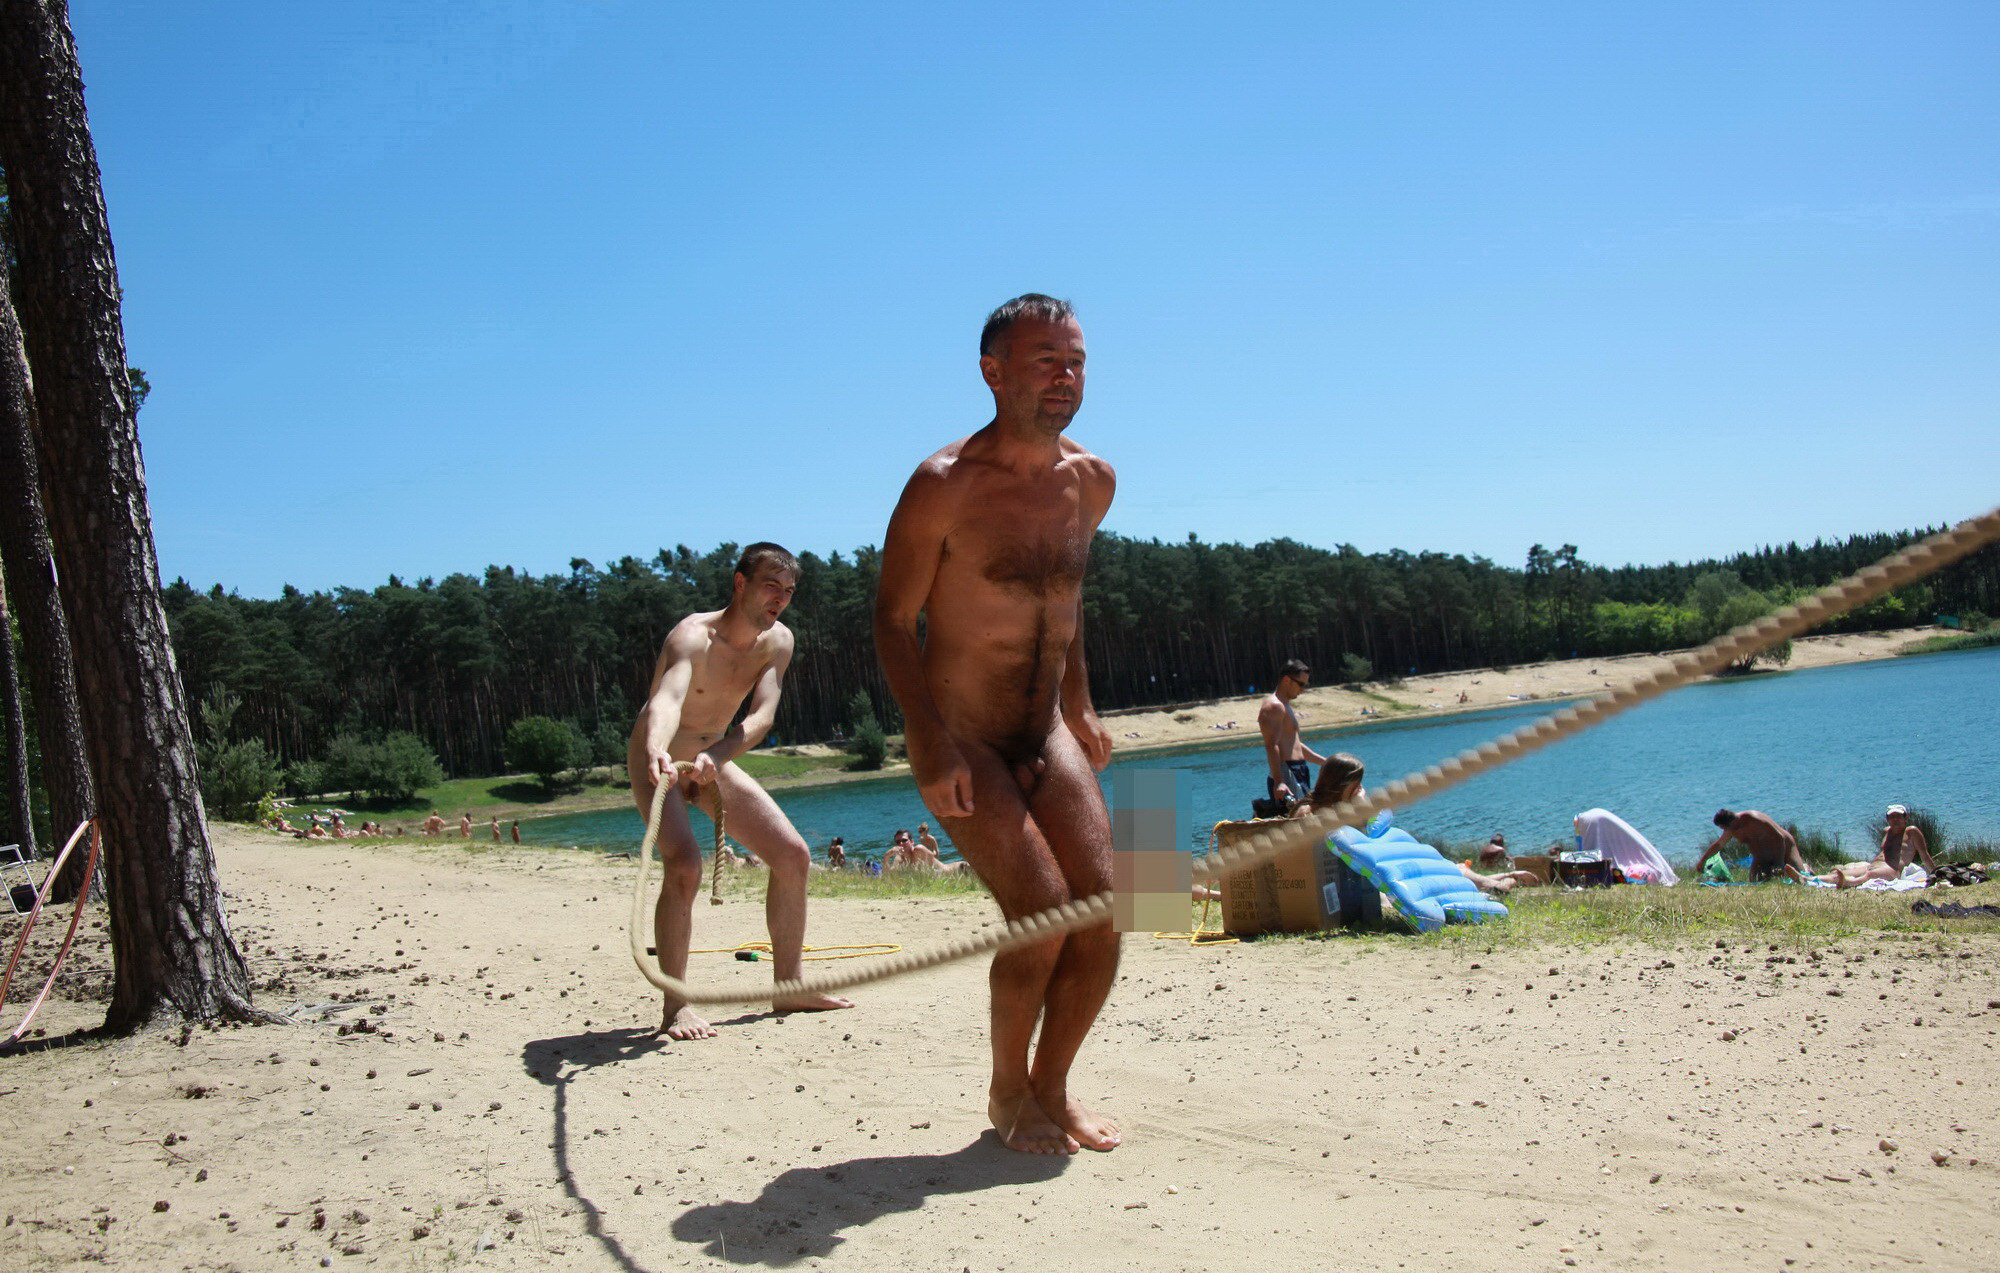 https://voyeurpapa.com/wp-content/uploads/2016/12/Nudists-family-nude-beach-52.jpg